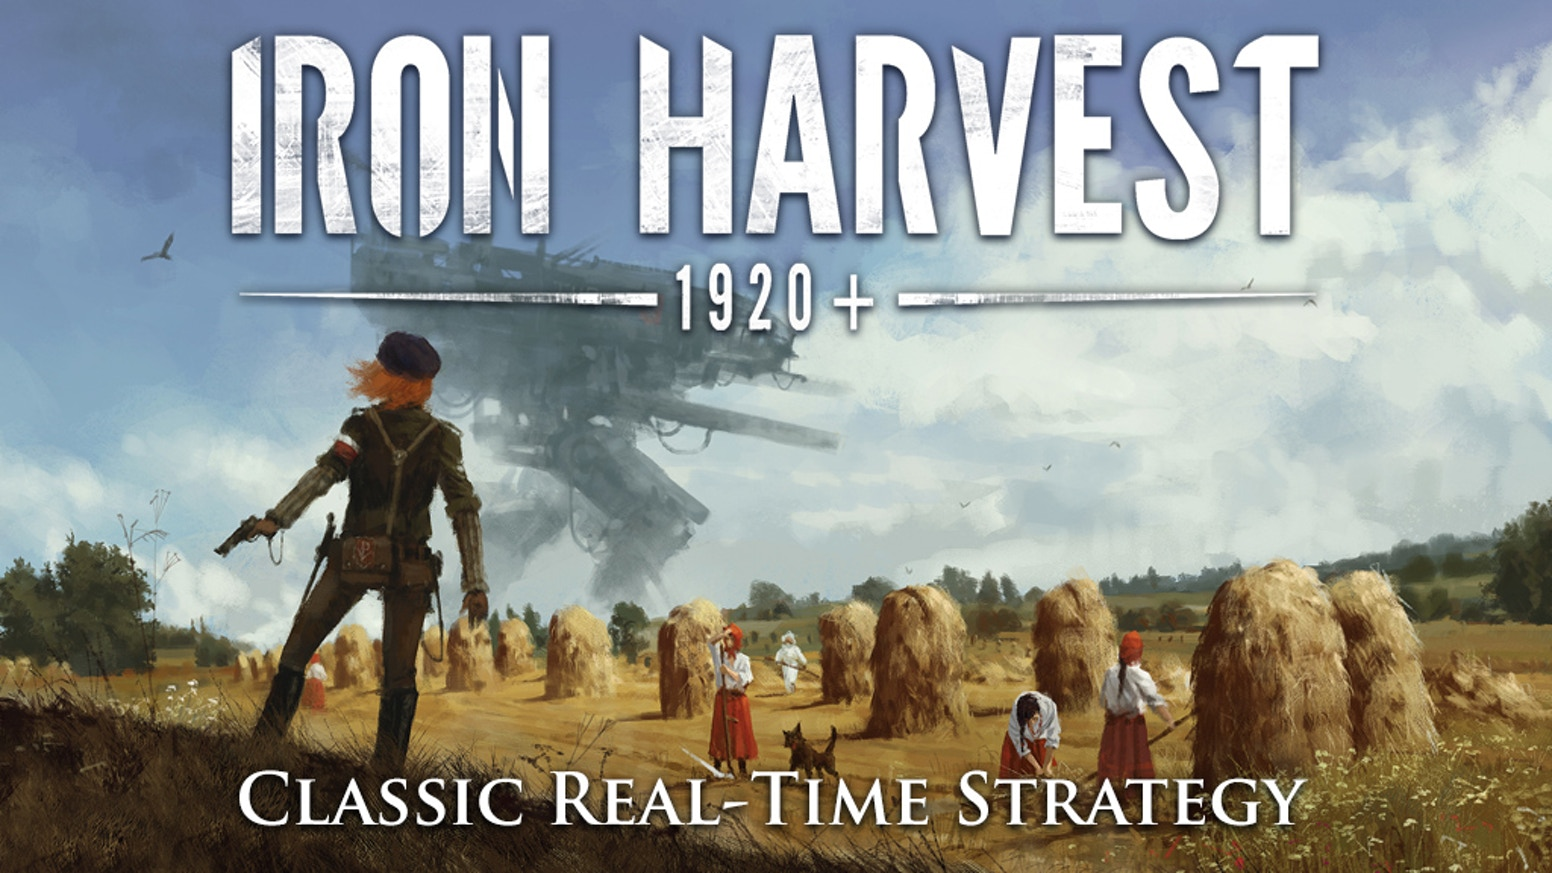 A classic real-time strategy game with an epic single player campaign, multiplayer & coop, set in the alternate reality of 1920+